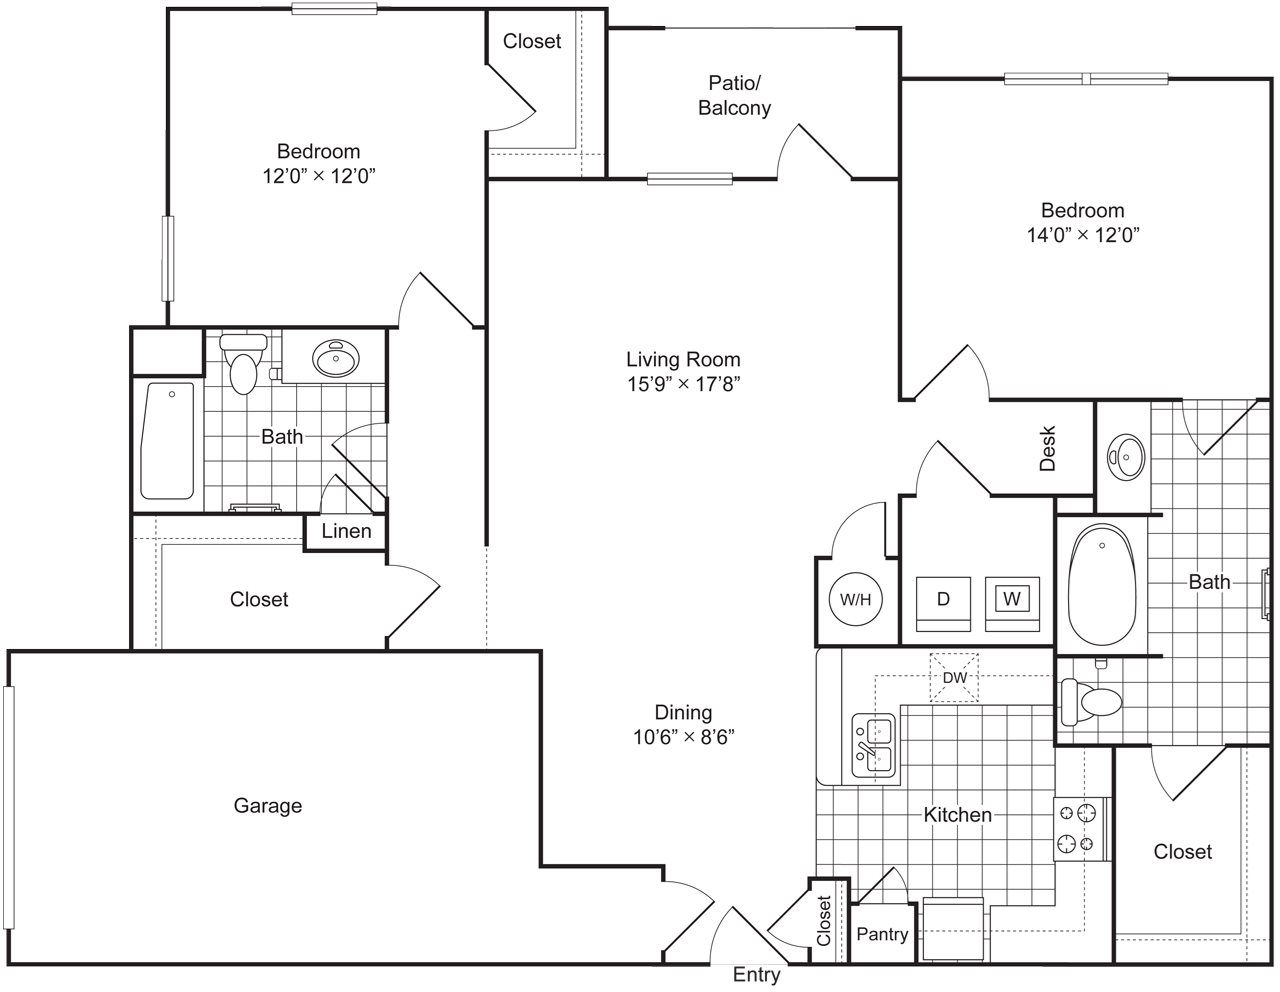 2 Bedroom 2 Bath 1303 sqft (B2G) Floor Plan 5